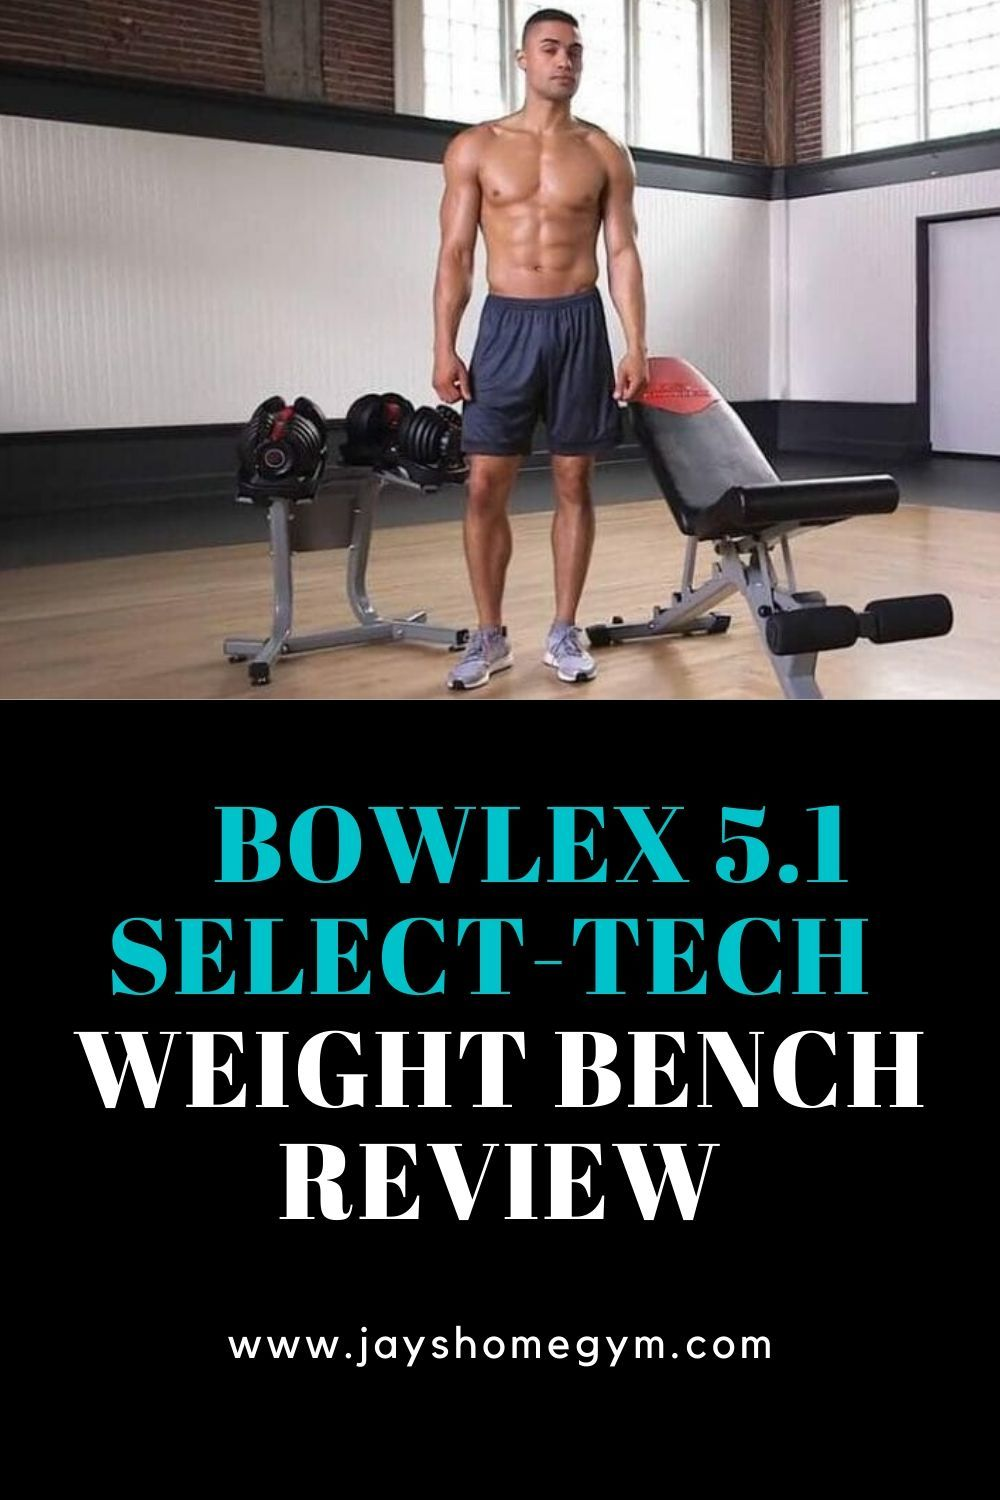 Bowflex Selecttech 5 1 Adjustable Bench Review With Video In 2020 Upper Body Workout Bowflex Adjustable Weight Bench